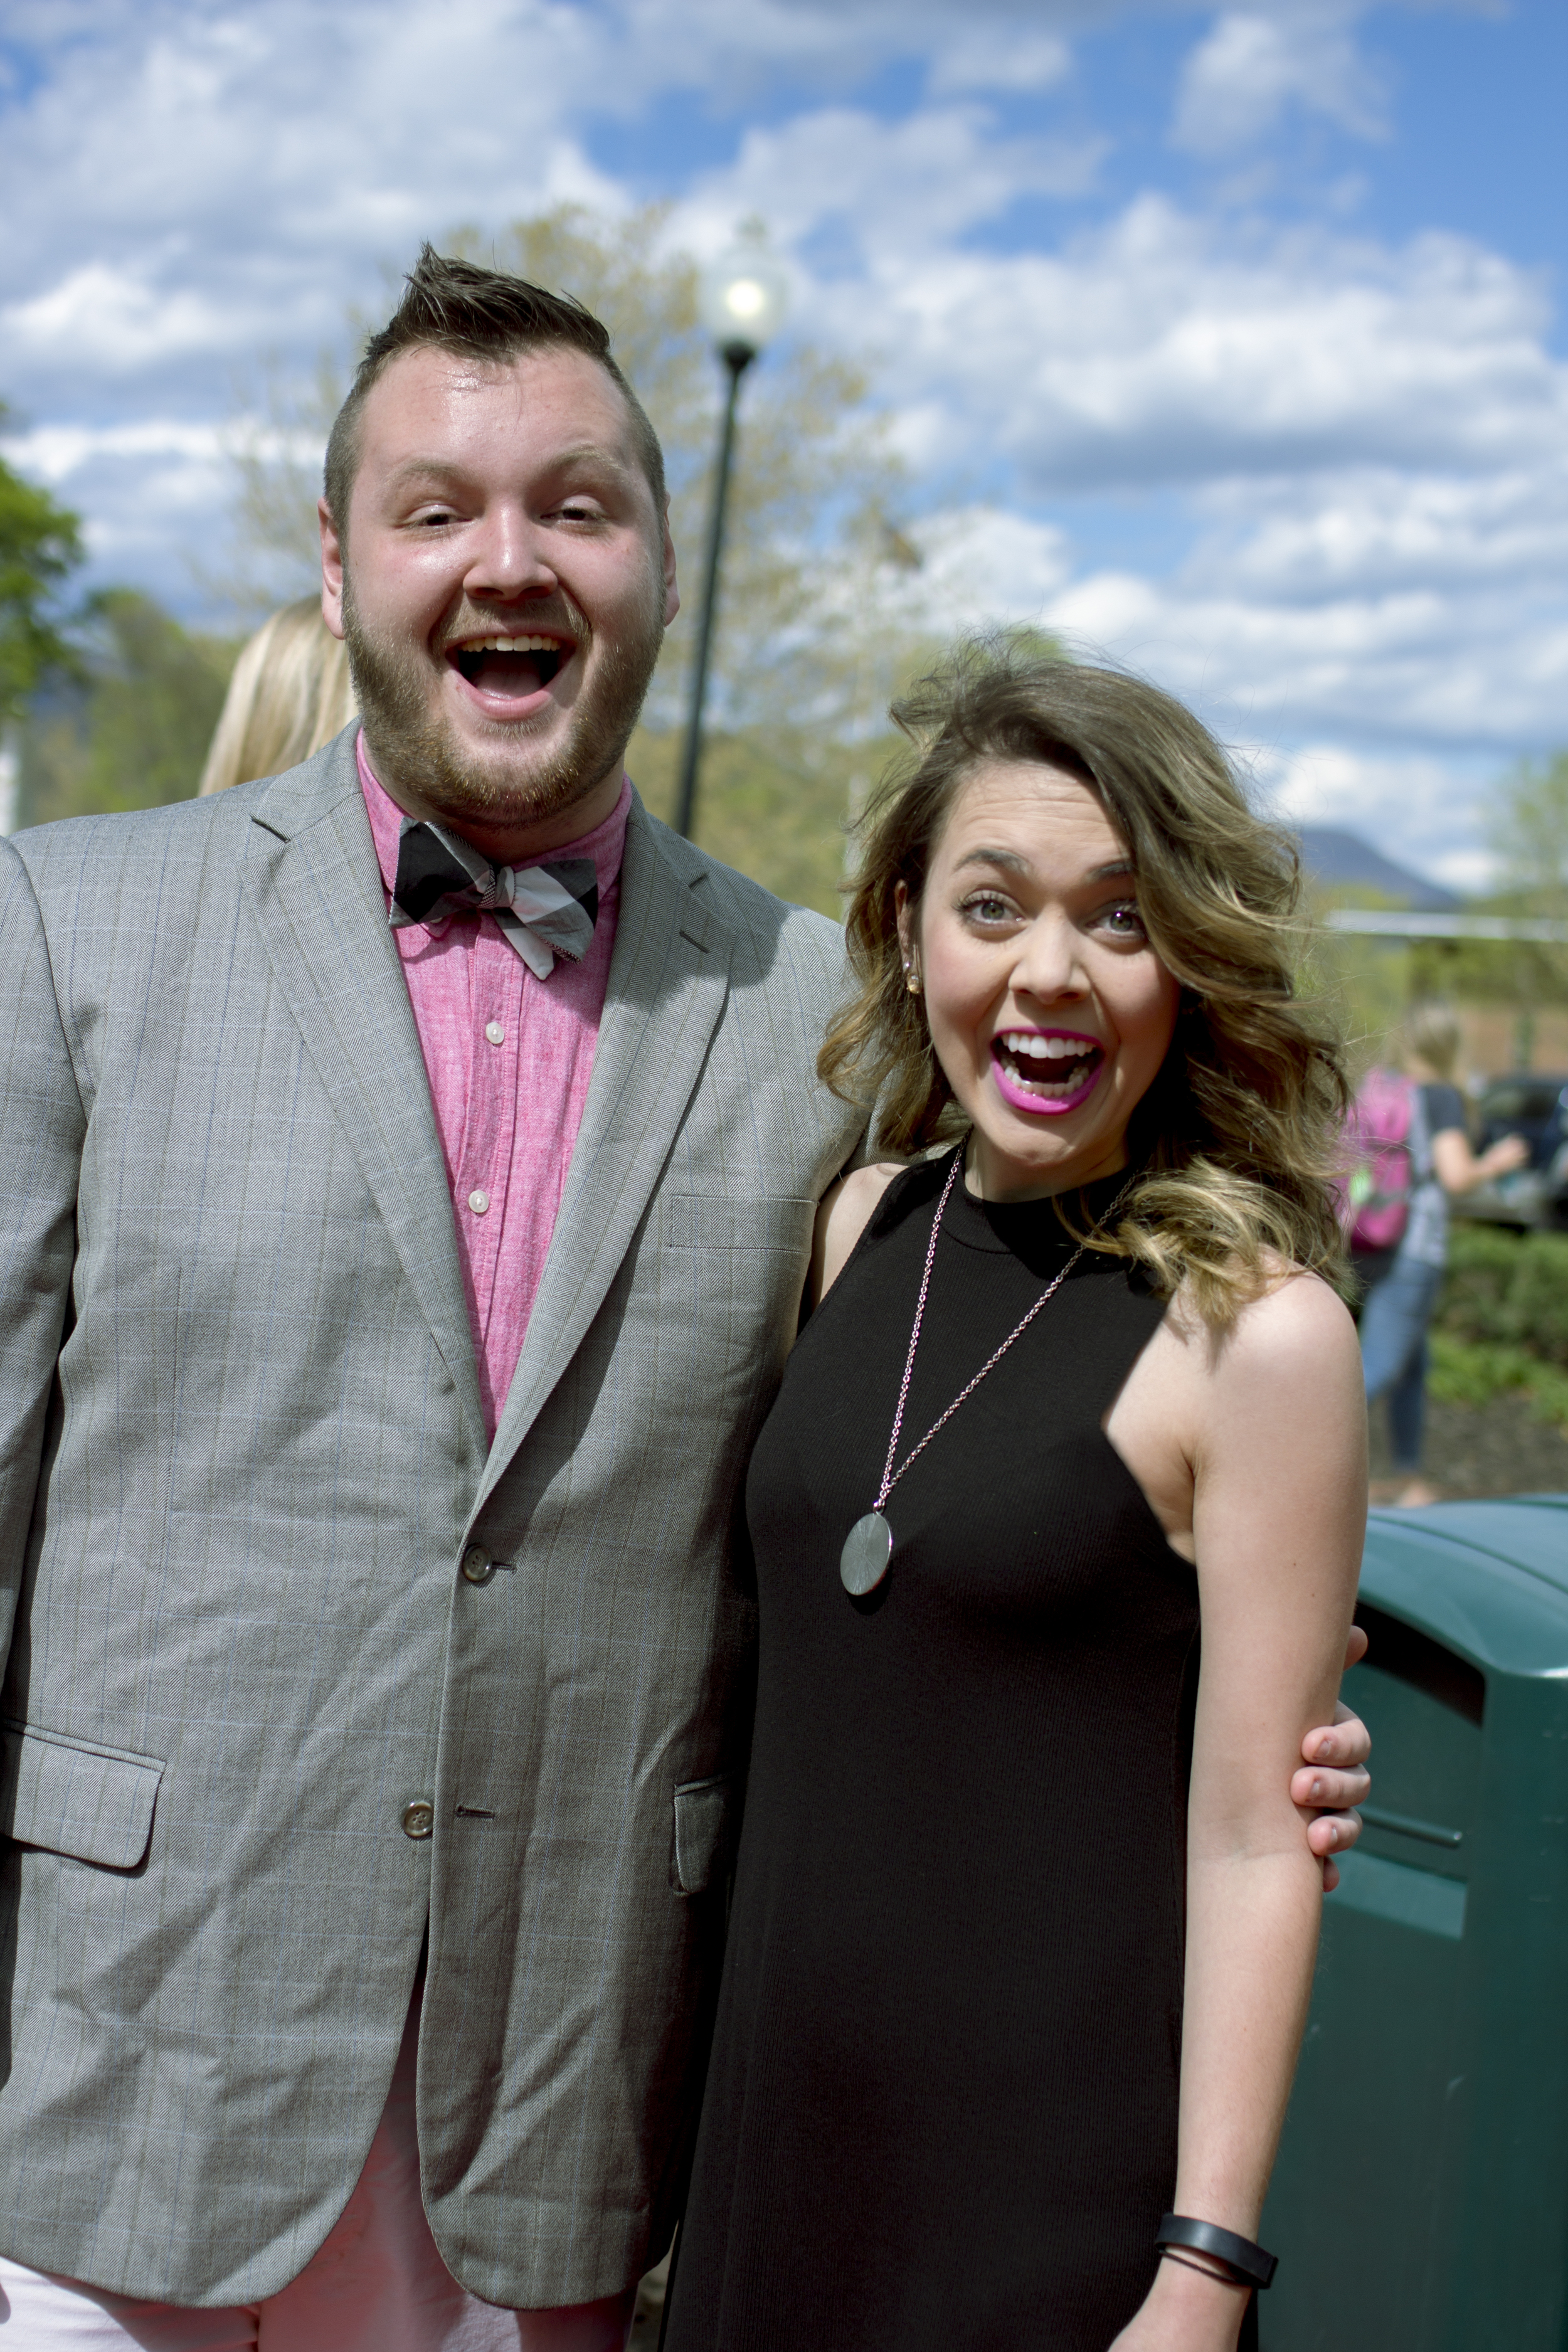 Adam Polk and Carlee Colvard don't shy away at the opportunity to look spiffy, but rather enjoy going all out at the opportunity to dress their best. They show their enthusiasm at the chance to attend the red carpet event.